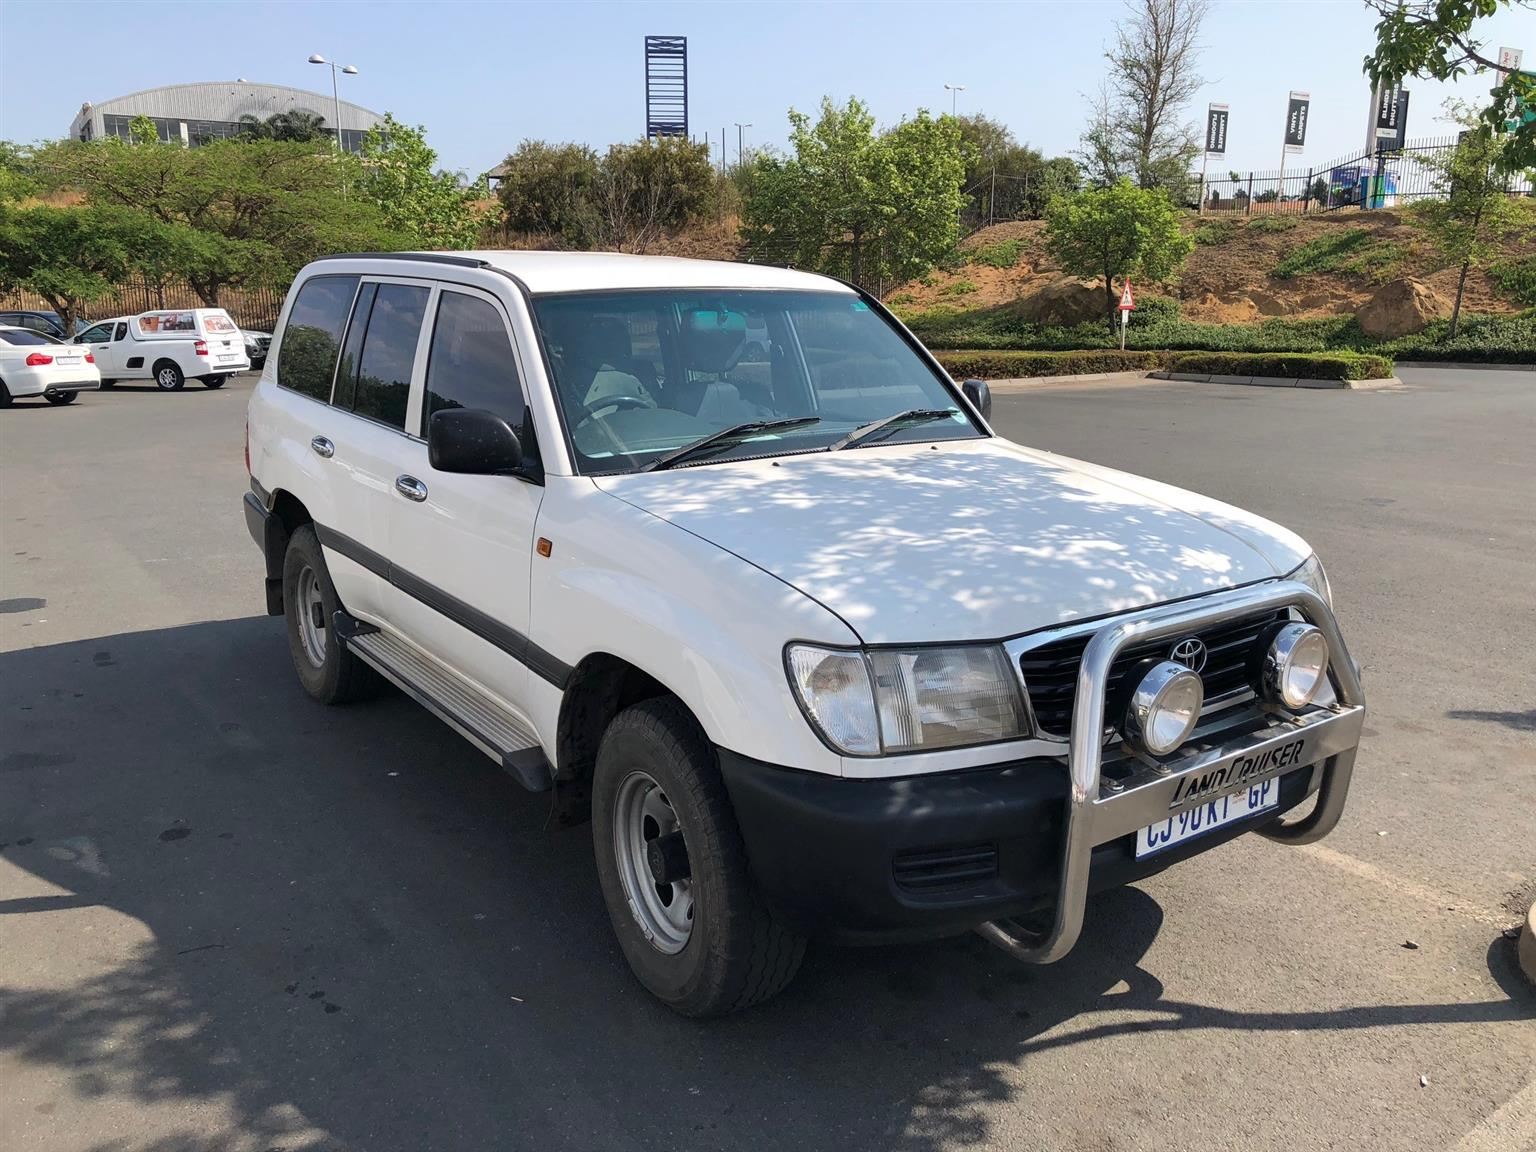 2000 Toyota Land Cruiser 100 4 5 GX buy used (second hand